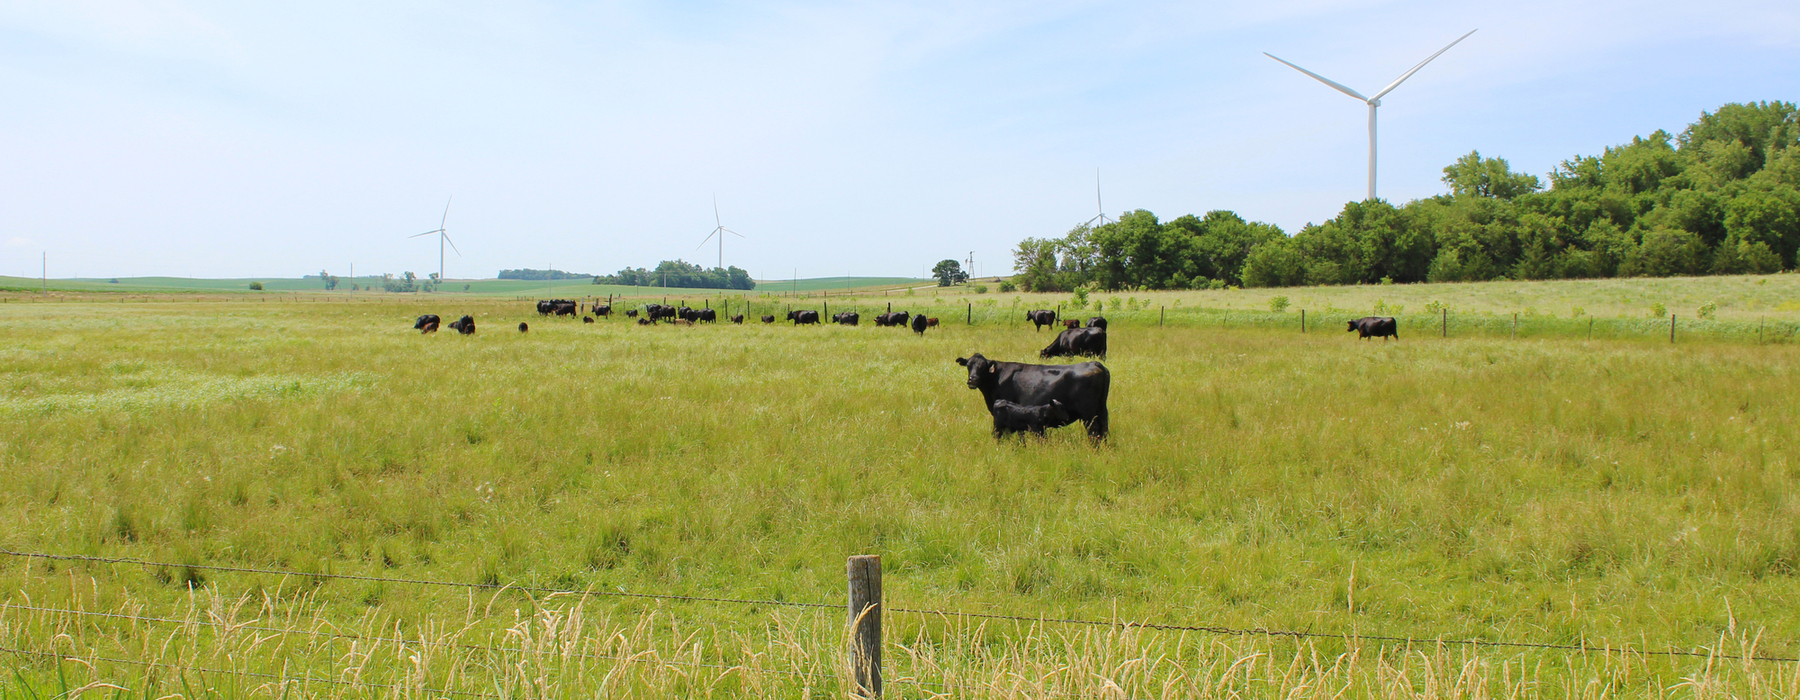 Cows in pasture with wind turbines behind